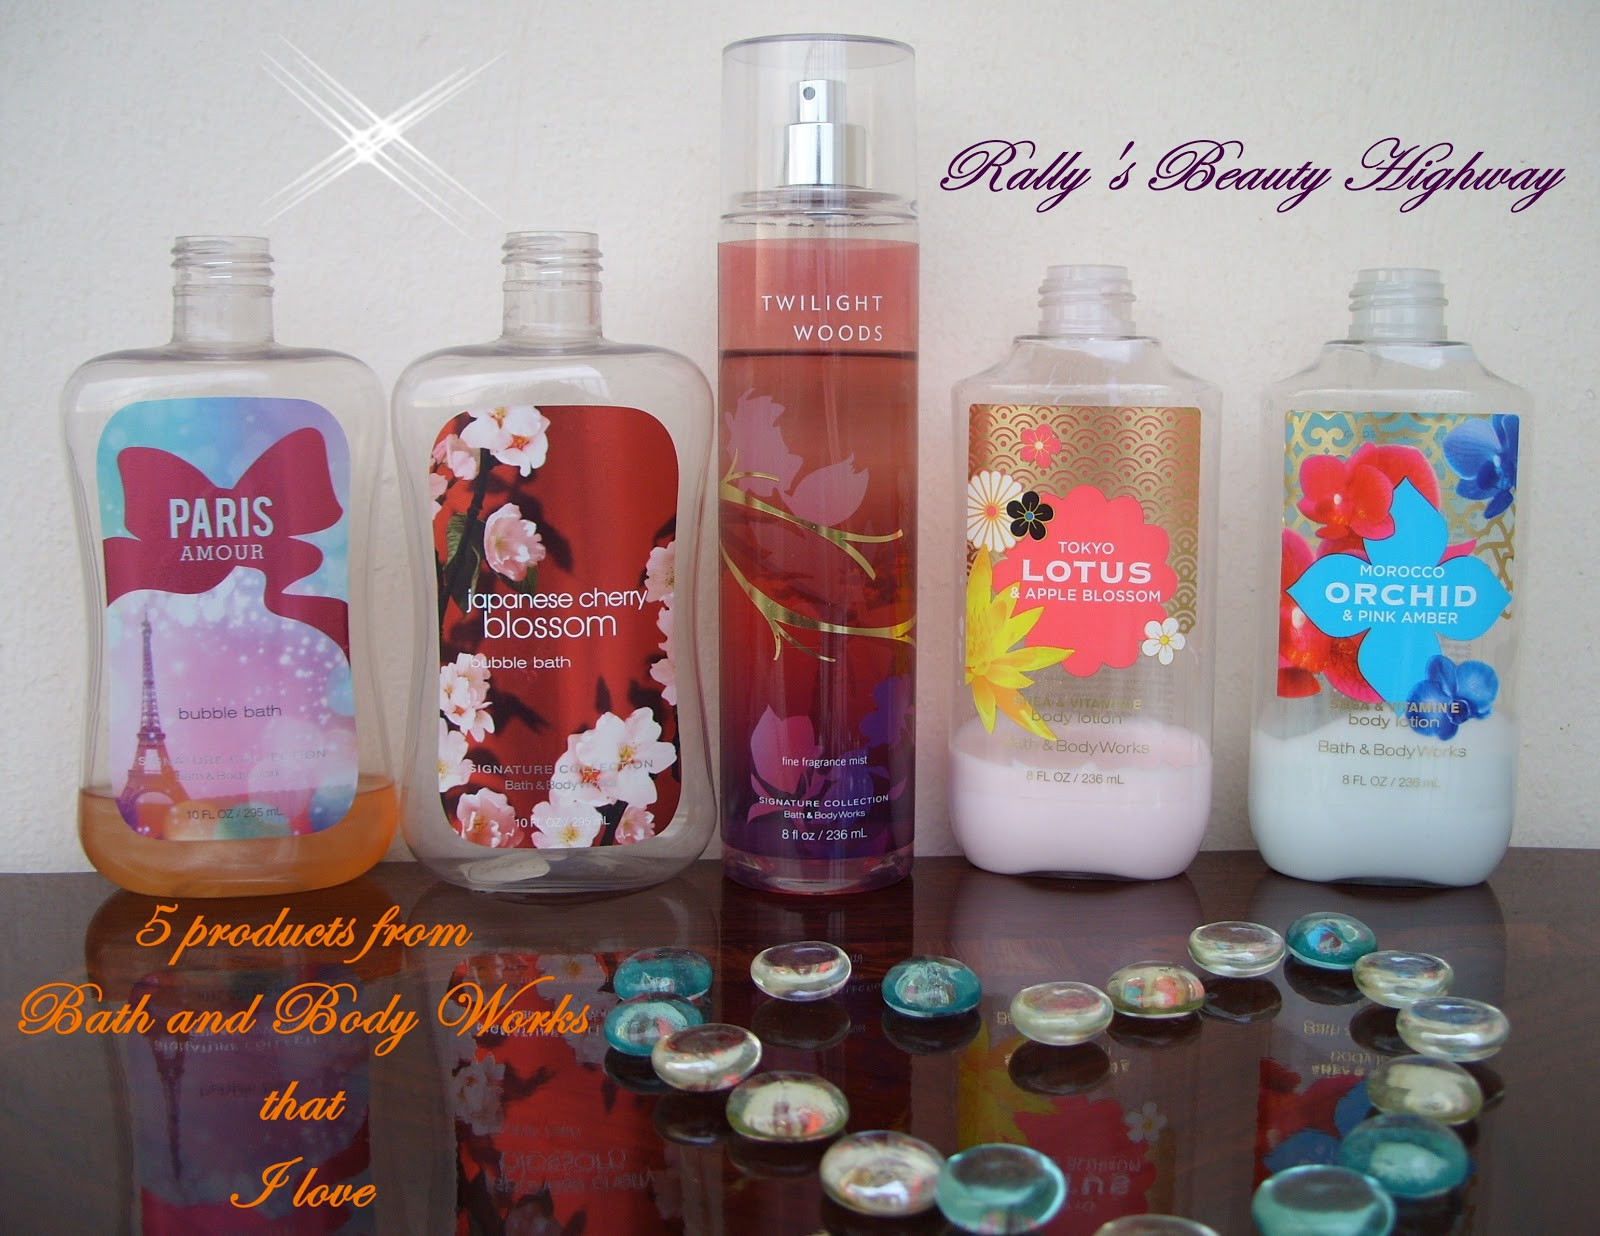 Bath and Body Works, body care, cosmetics